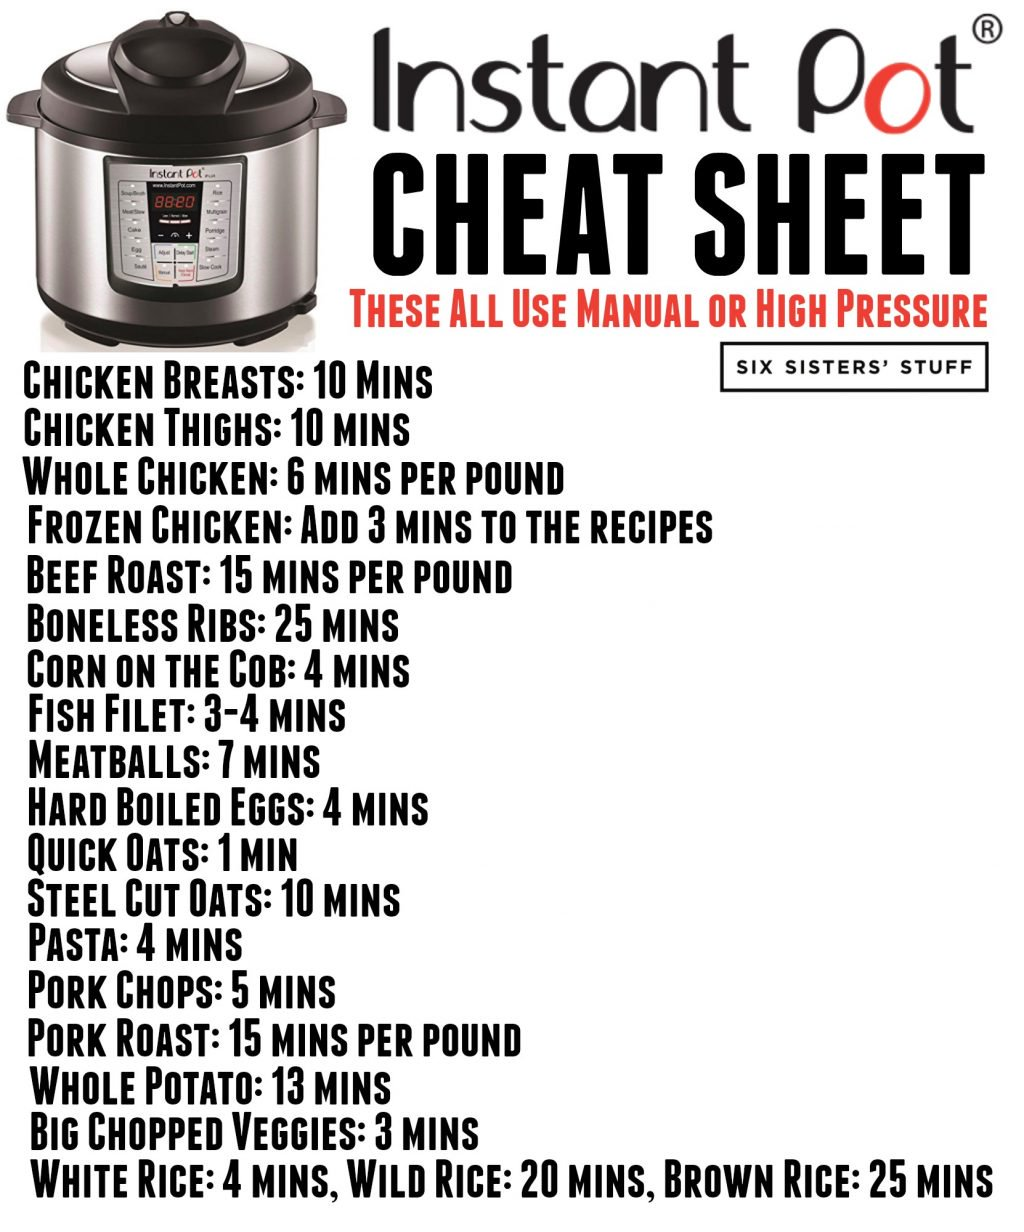 Instant Pot Cheat Sheet Do It And How